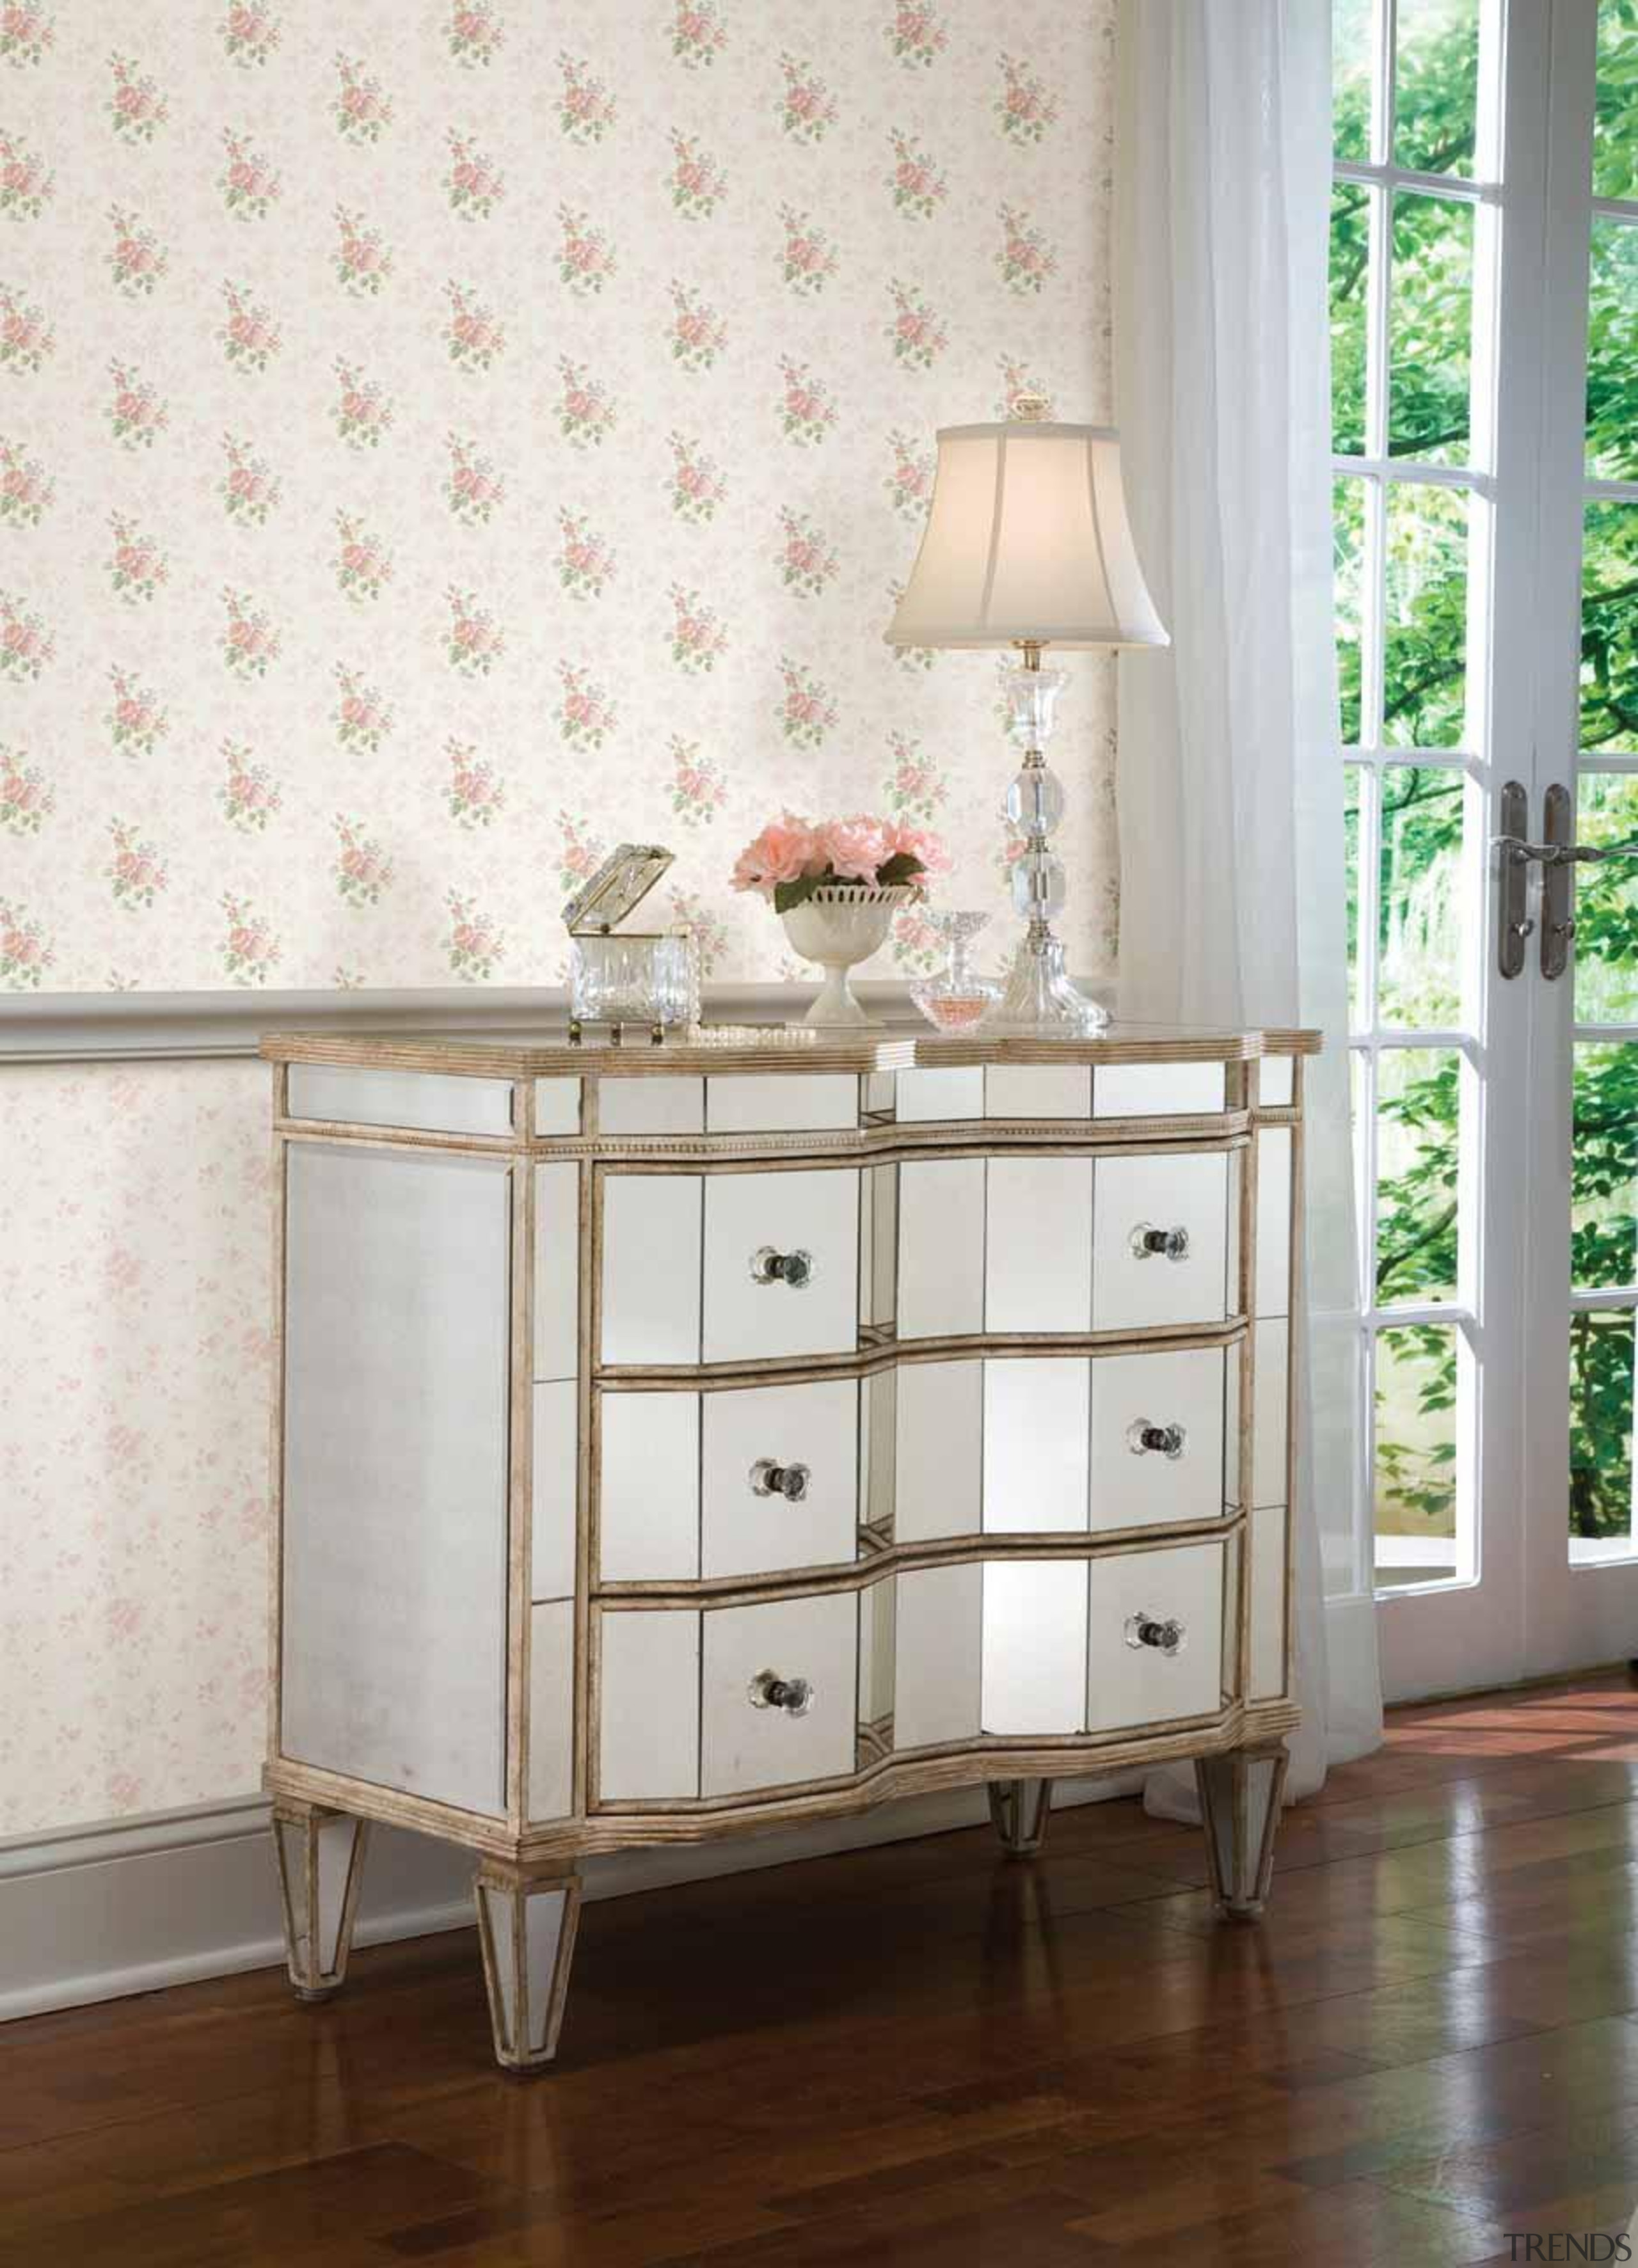 Modern Style Range - bed frame | chest bed frame, chest of drawers, drawer, end table, furniture, home, interior design, nightstand, product, sideboard, table, white